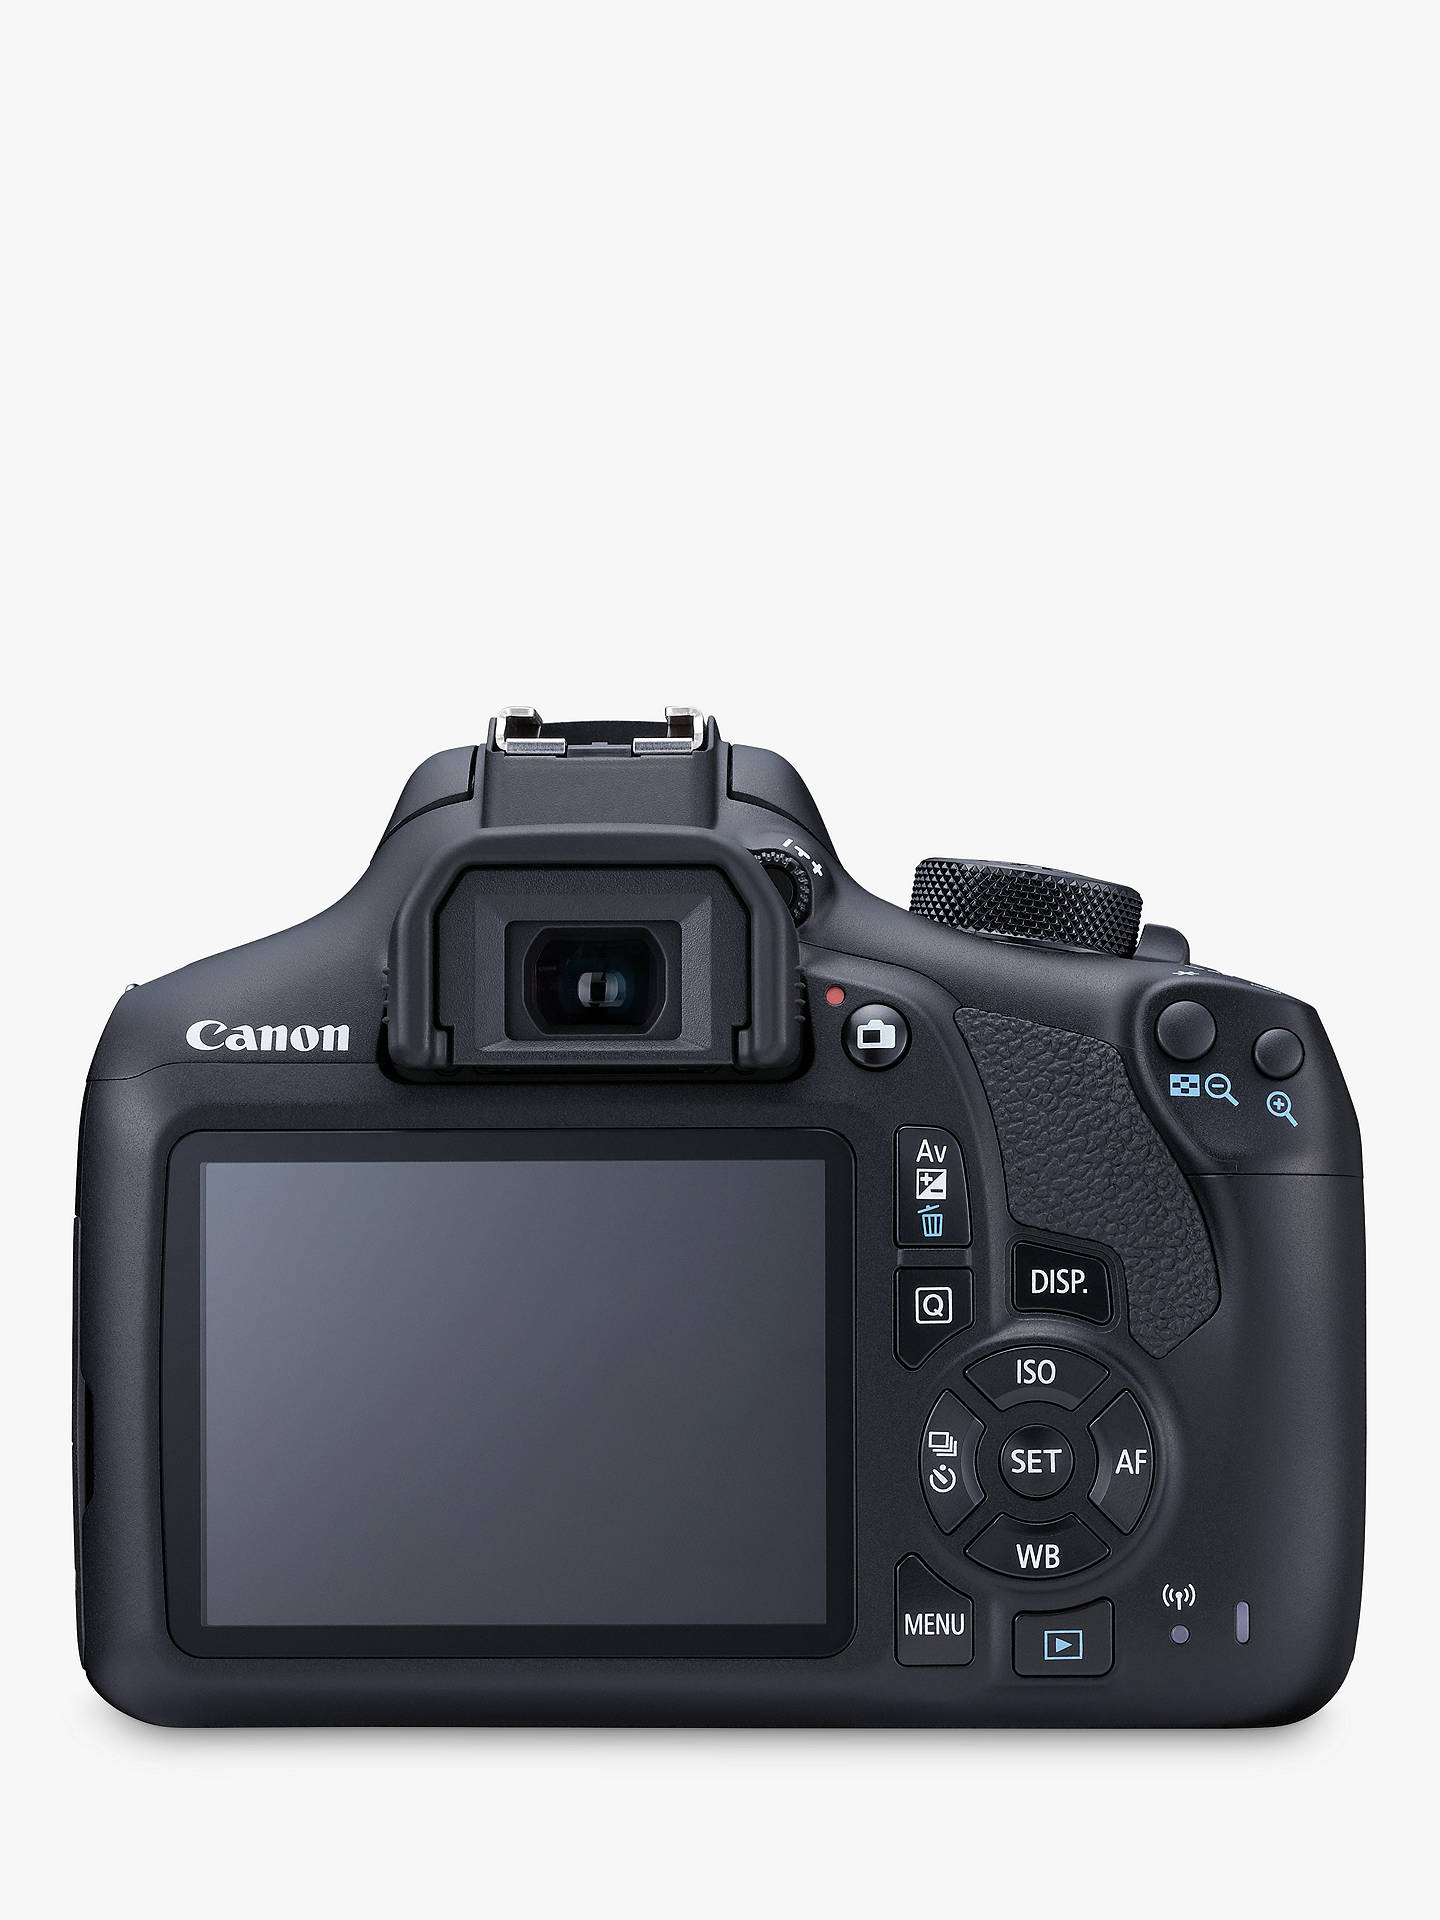 Canon EOS 1300D Digital SLR Camera With 18-55mm Lens, HD 1080p, 18MP,  Wi-Fi, NFC, 3